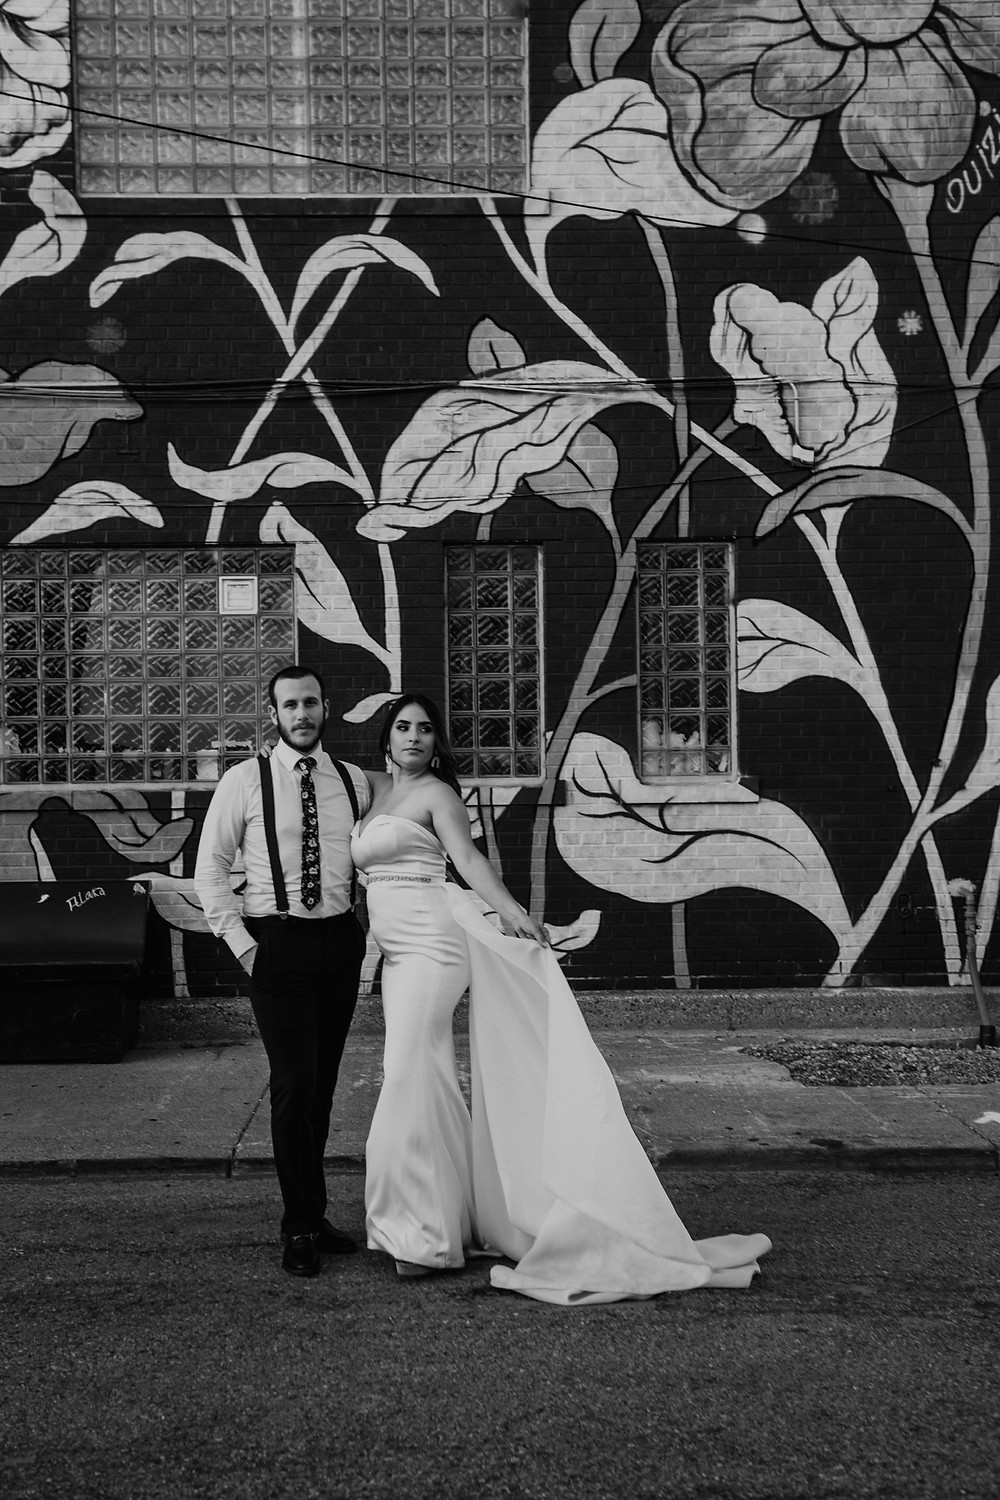 Bride and groom taking wedding photos with Detroit murals. Photographed by Nicole Leanne Photography.